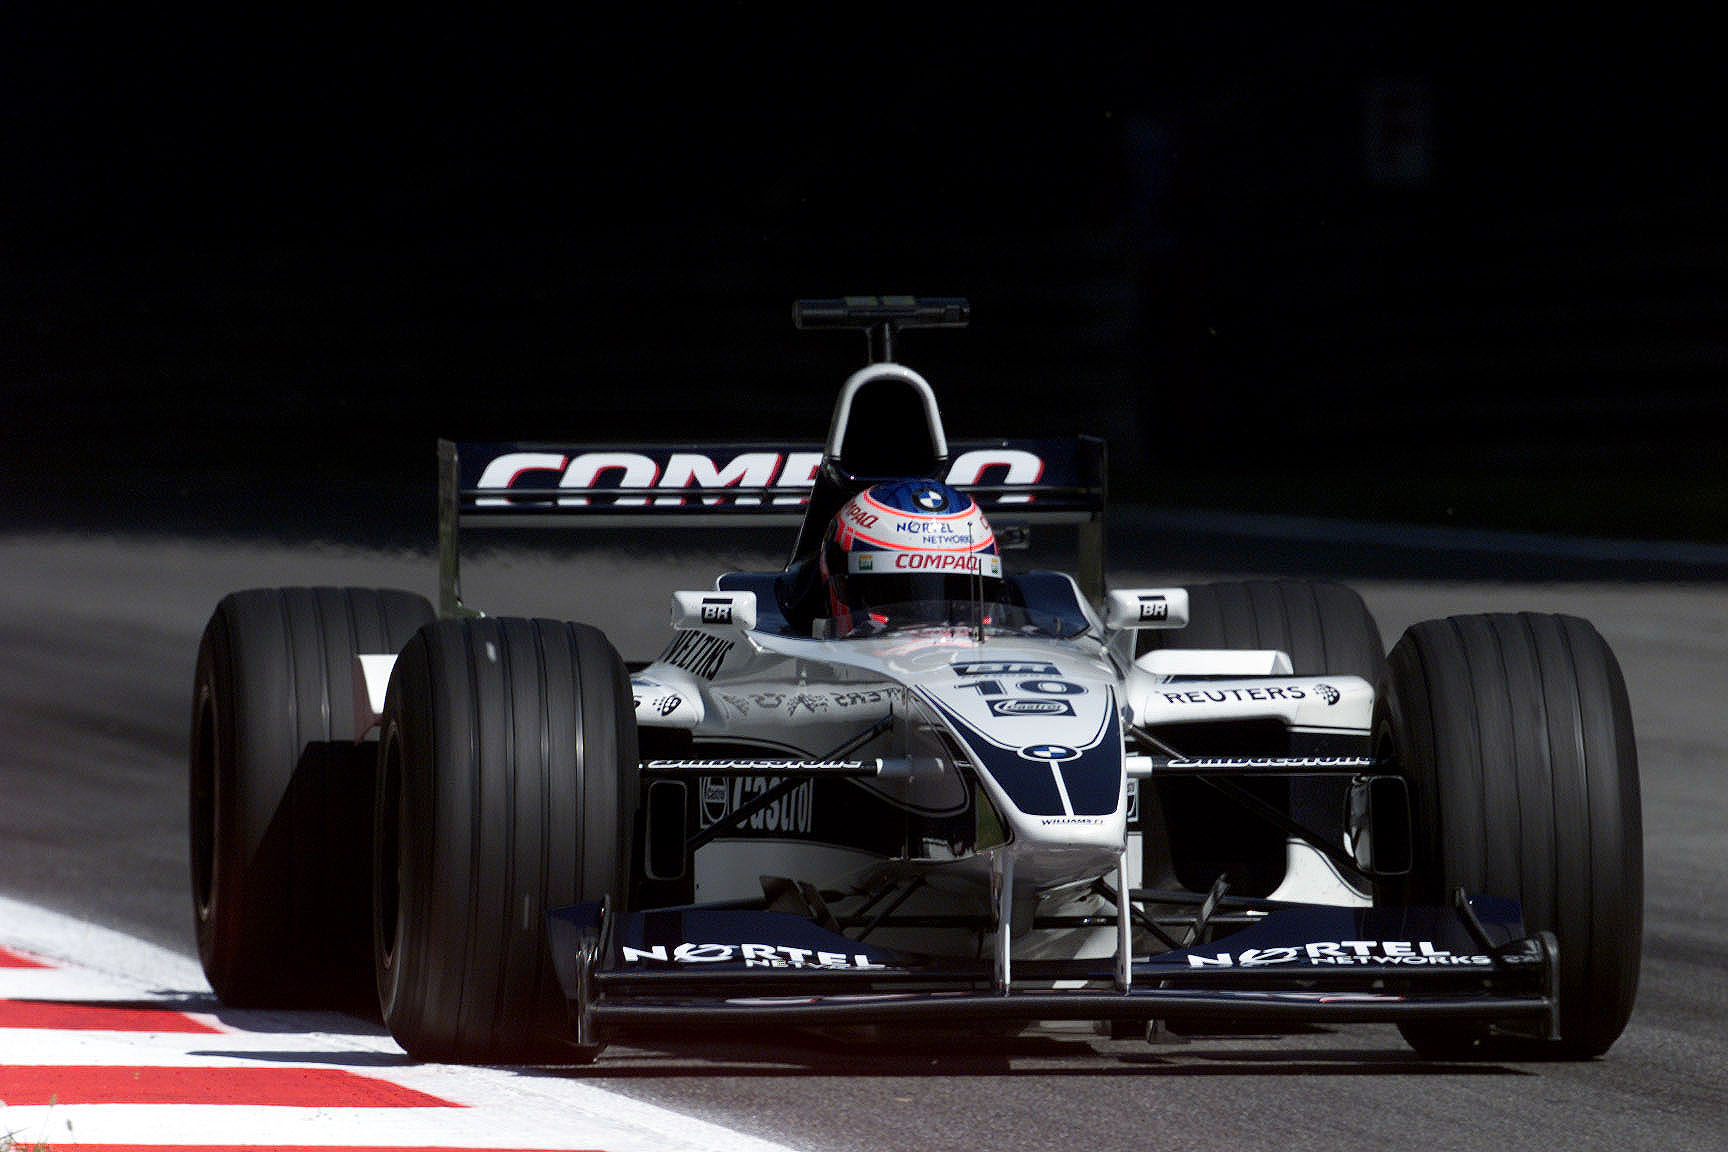 Jenson Button driving the Williams FW22 BMW during Italian F1 GP on Monza (2000)